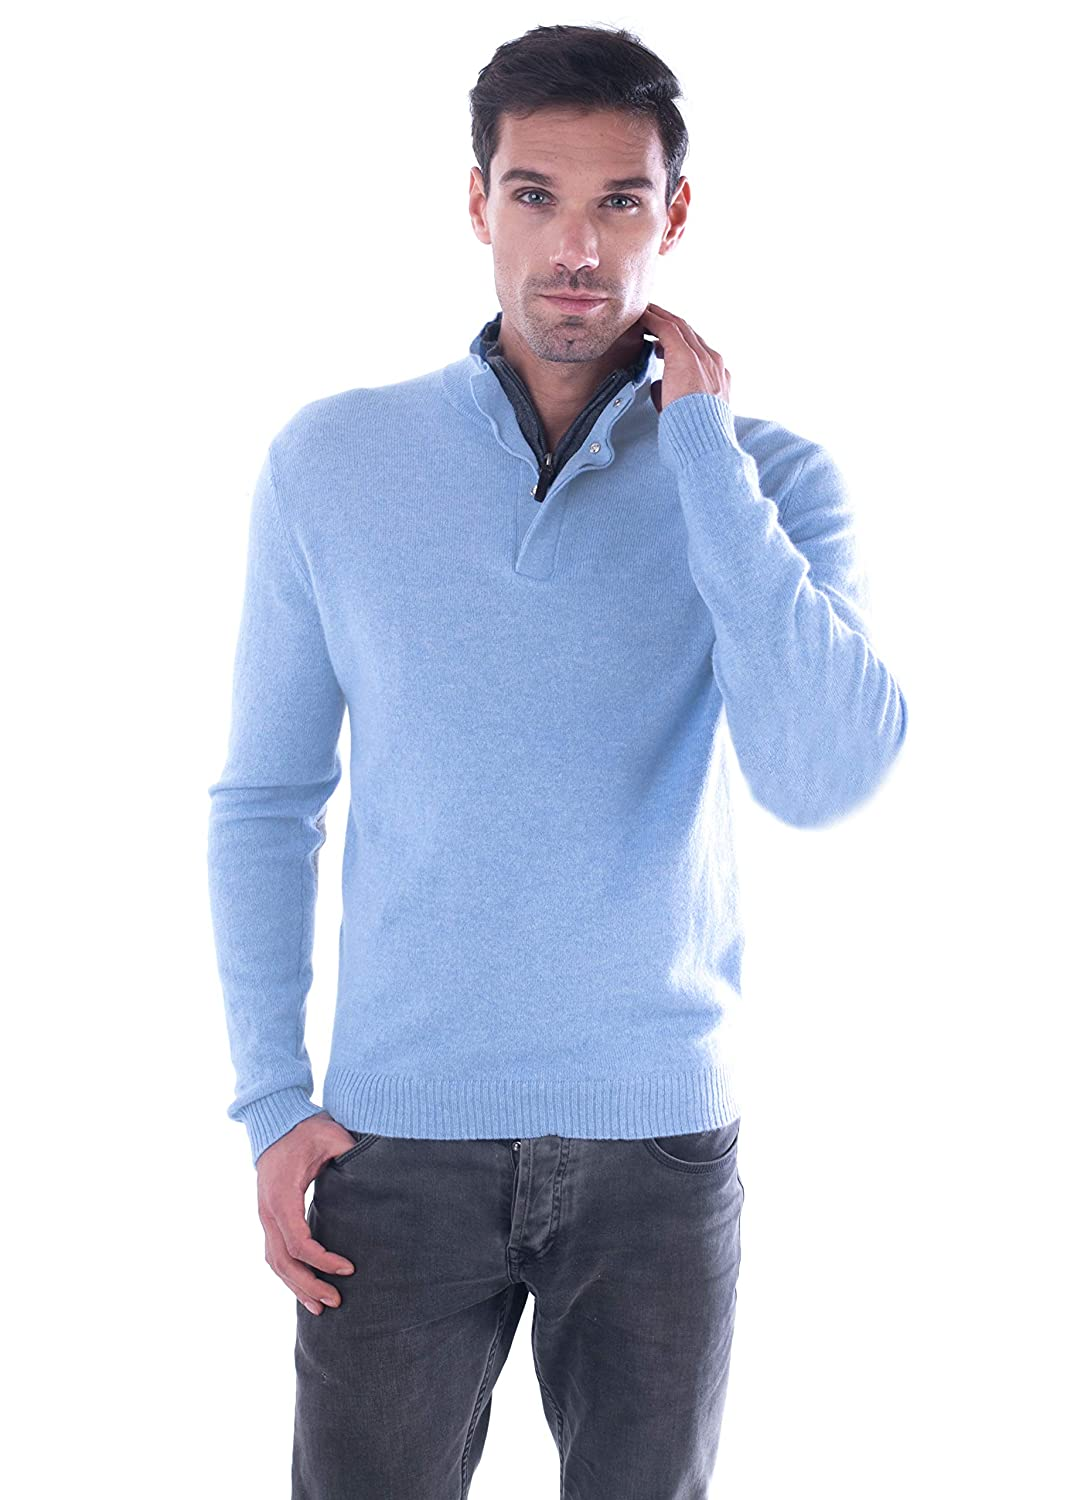 d7380c50b cashmere 4 U Men s 100% Pure Cashmere Pullover Half Zip Mock Neck Sweater  at Amazon Men s Clothing store